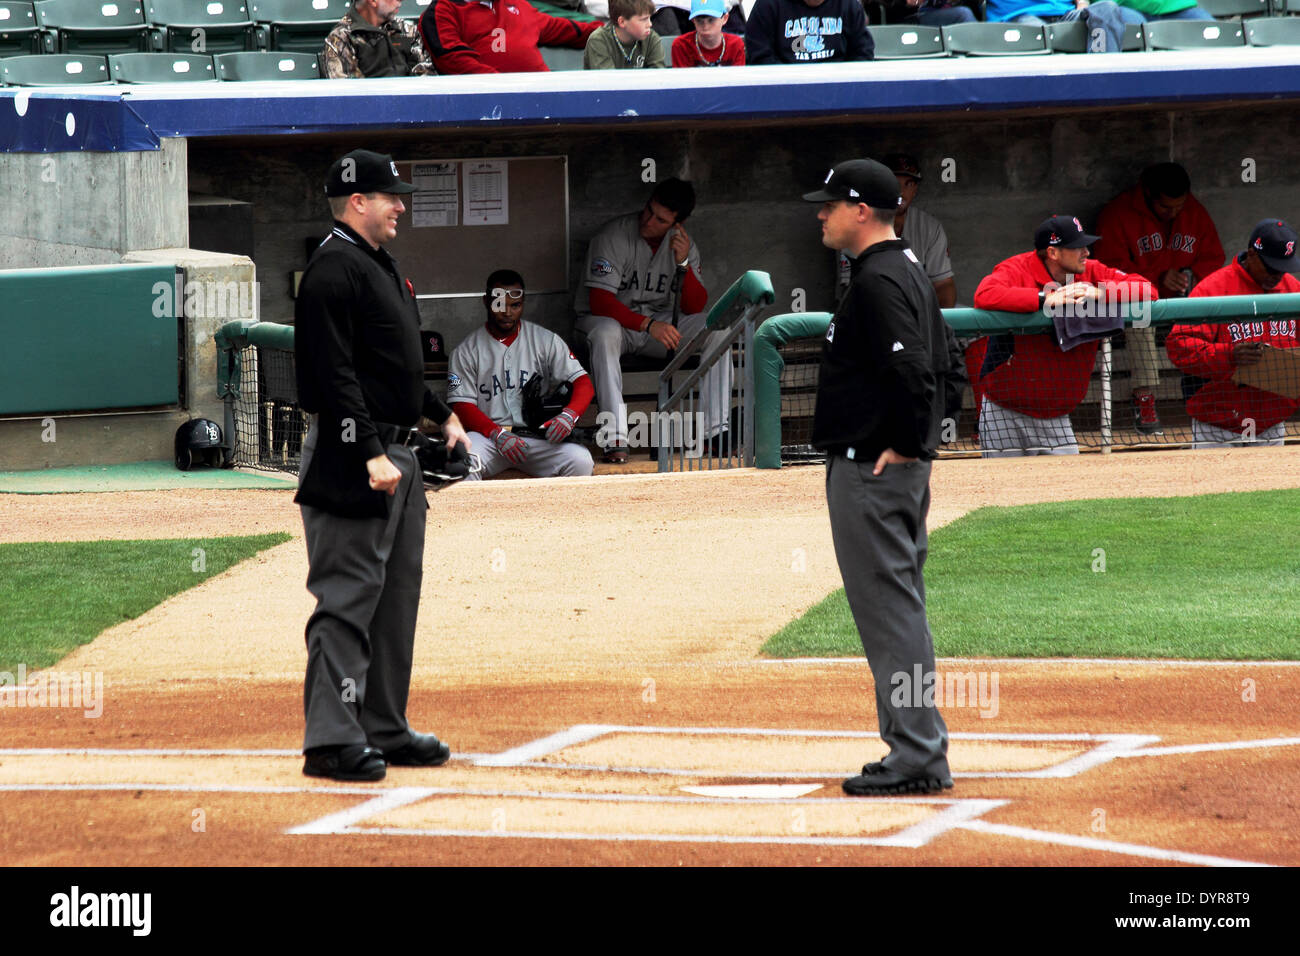 Two baseball umpires confer on the field. - Stock Image